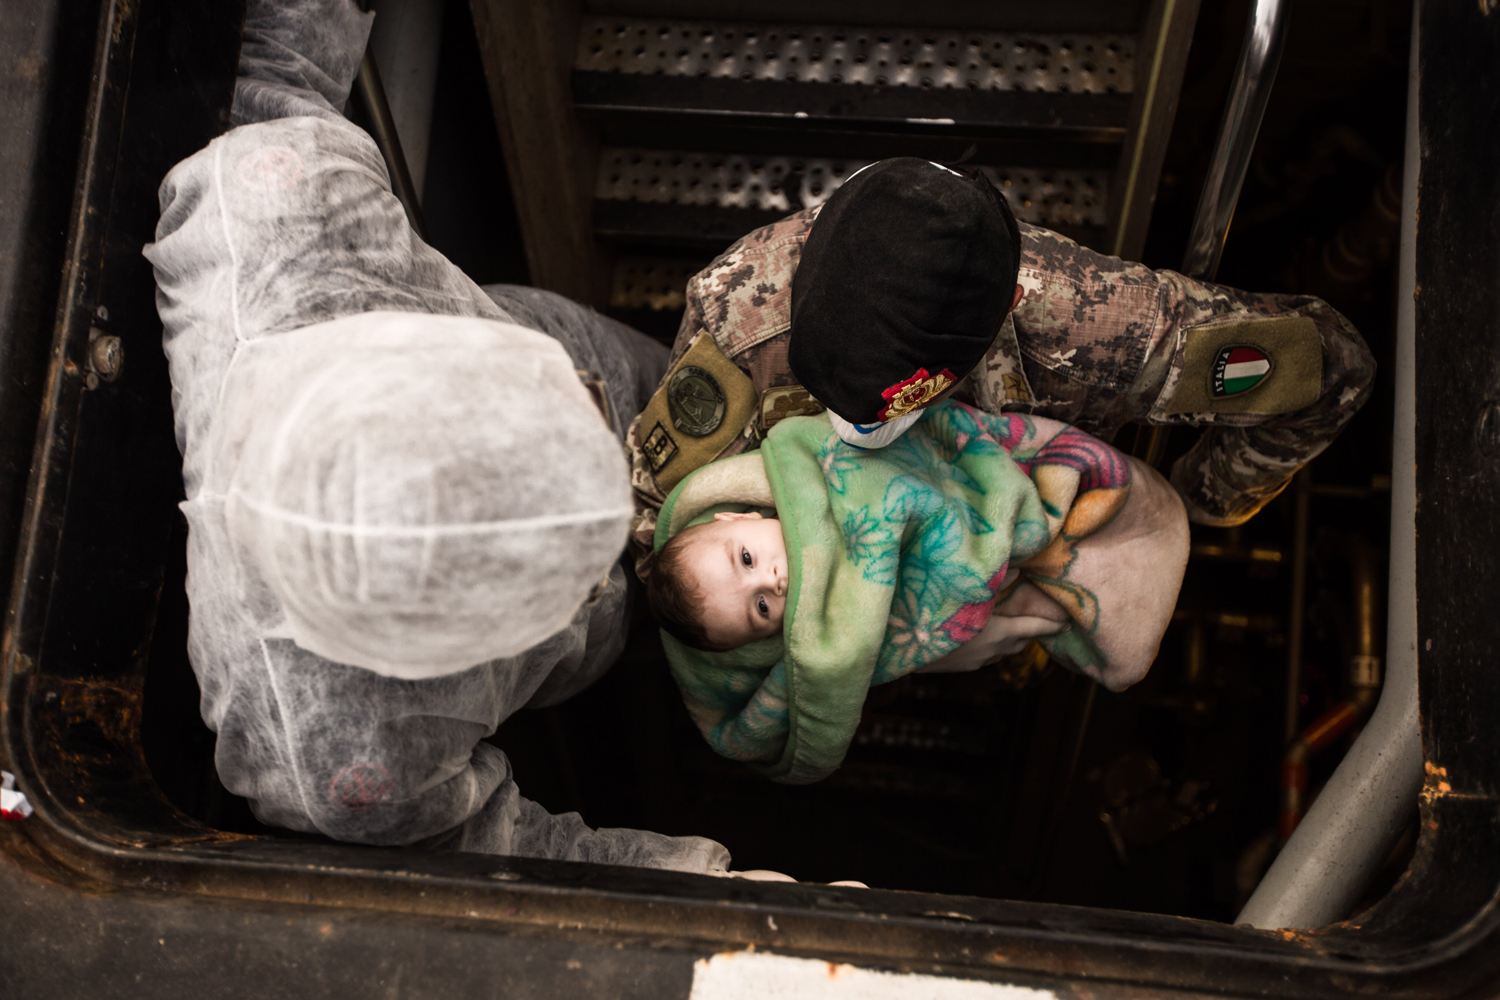 Italian soldier carries a Syrian child on a ship after the Italian navy rescued 443 Syrian asylum seekers off a fishing vessel, June 5, 2014.